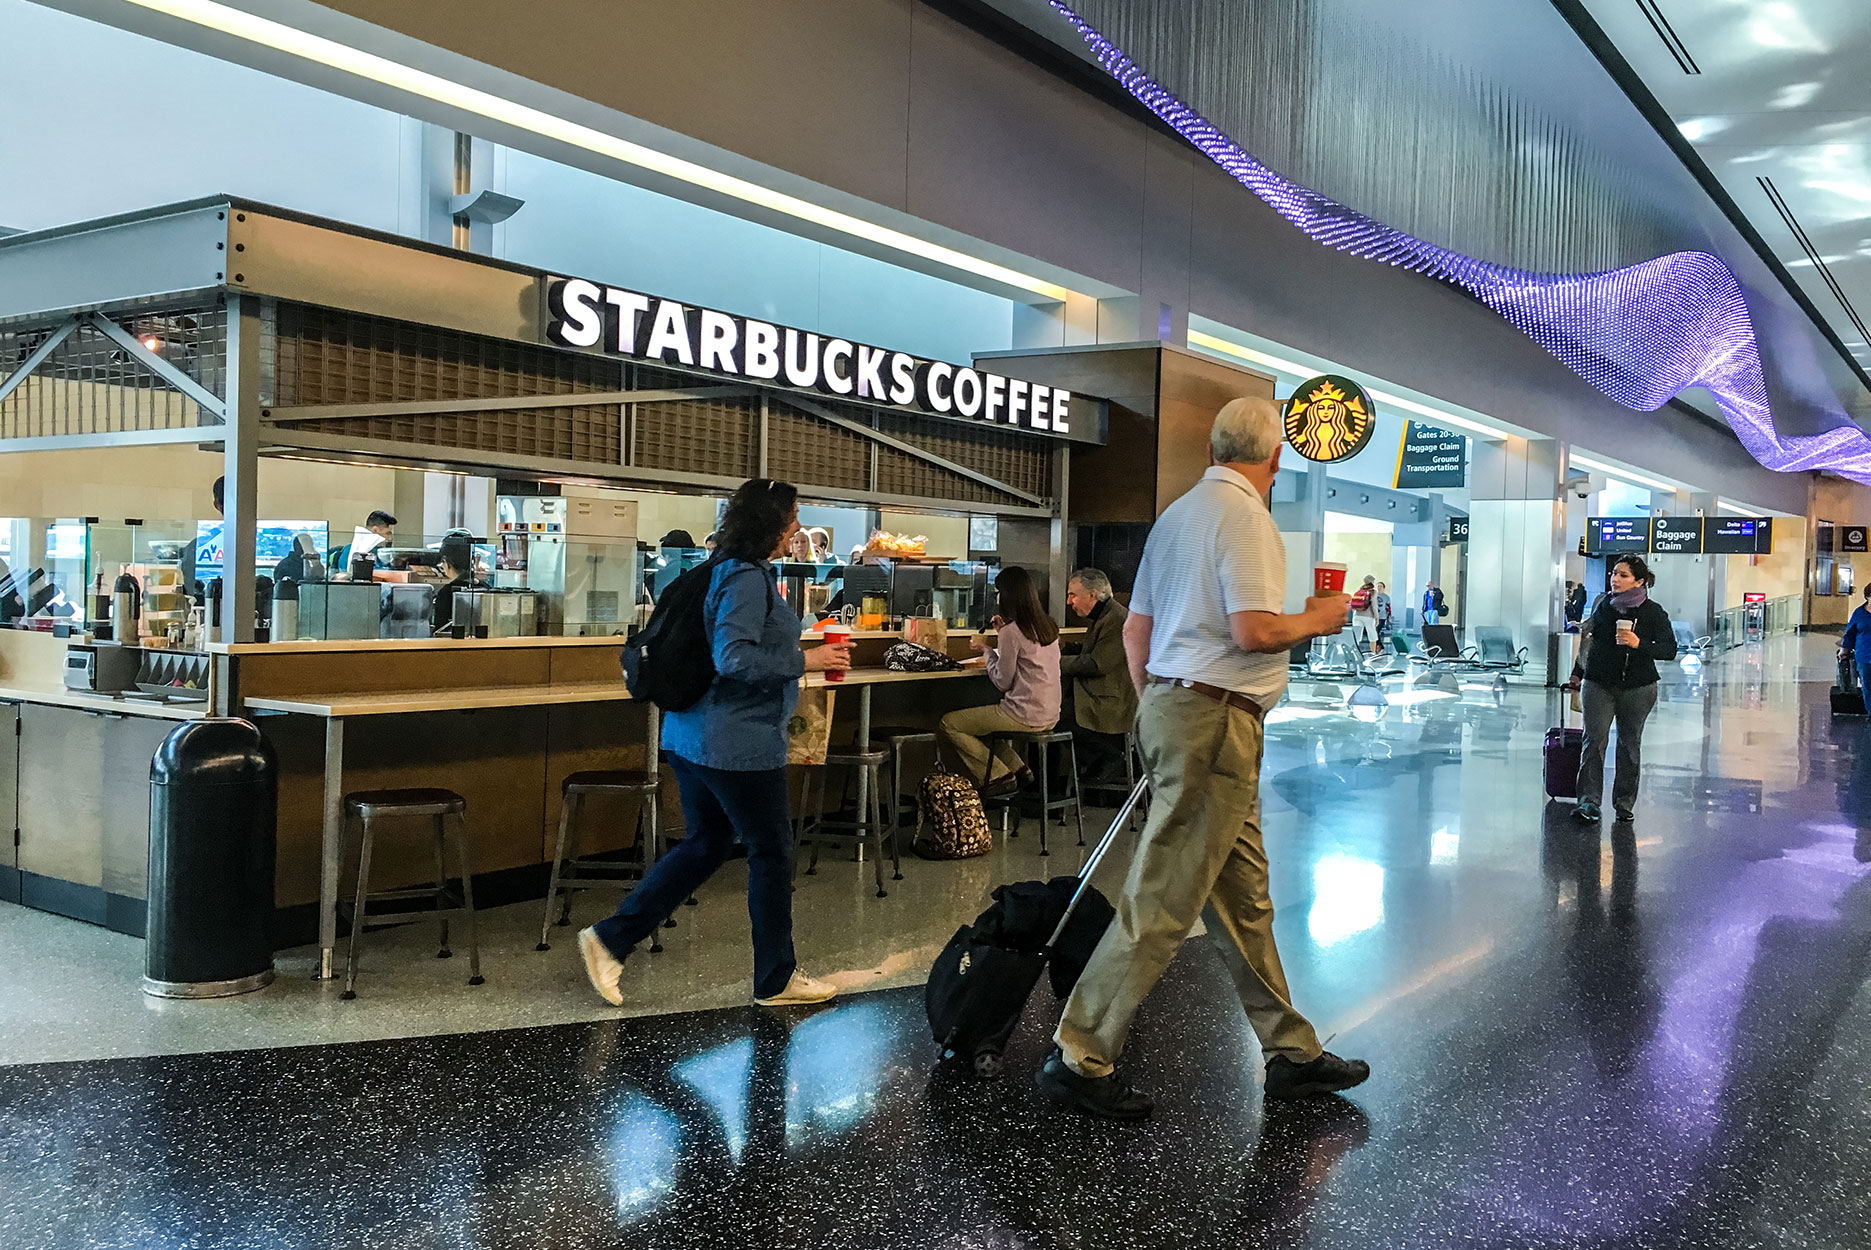 an airport starbucks location in San Diego